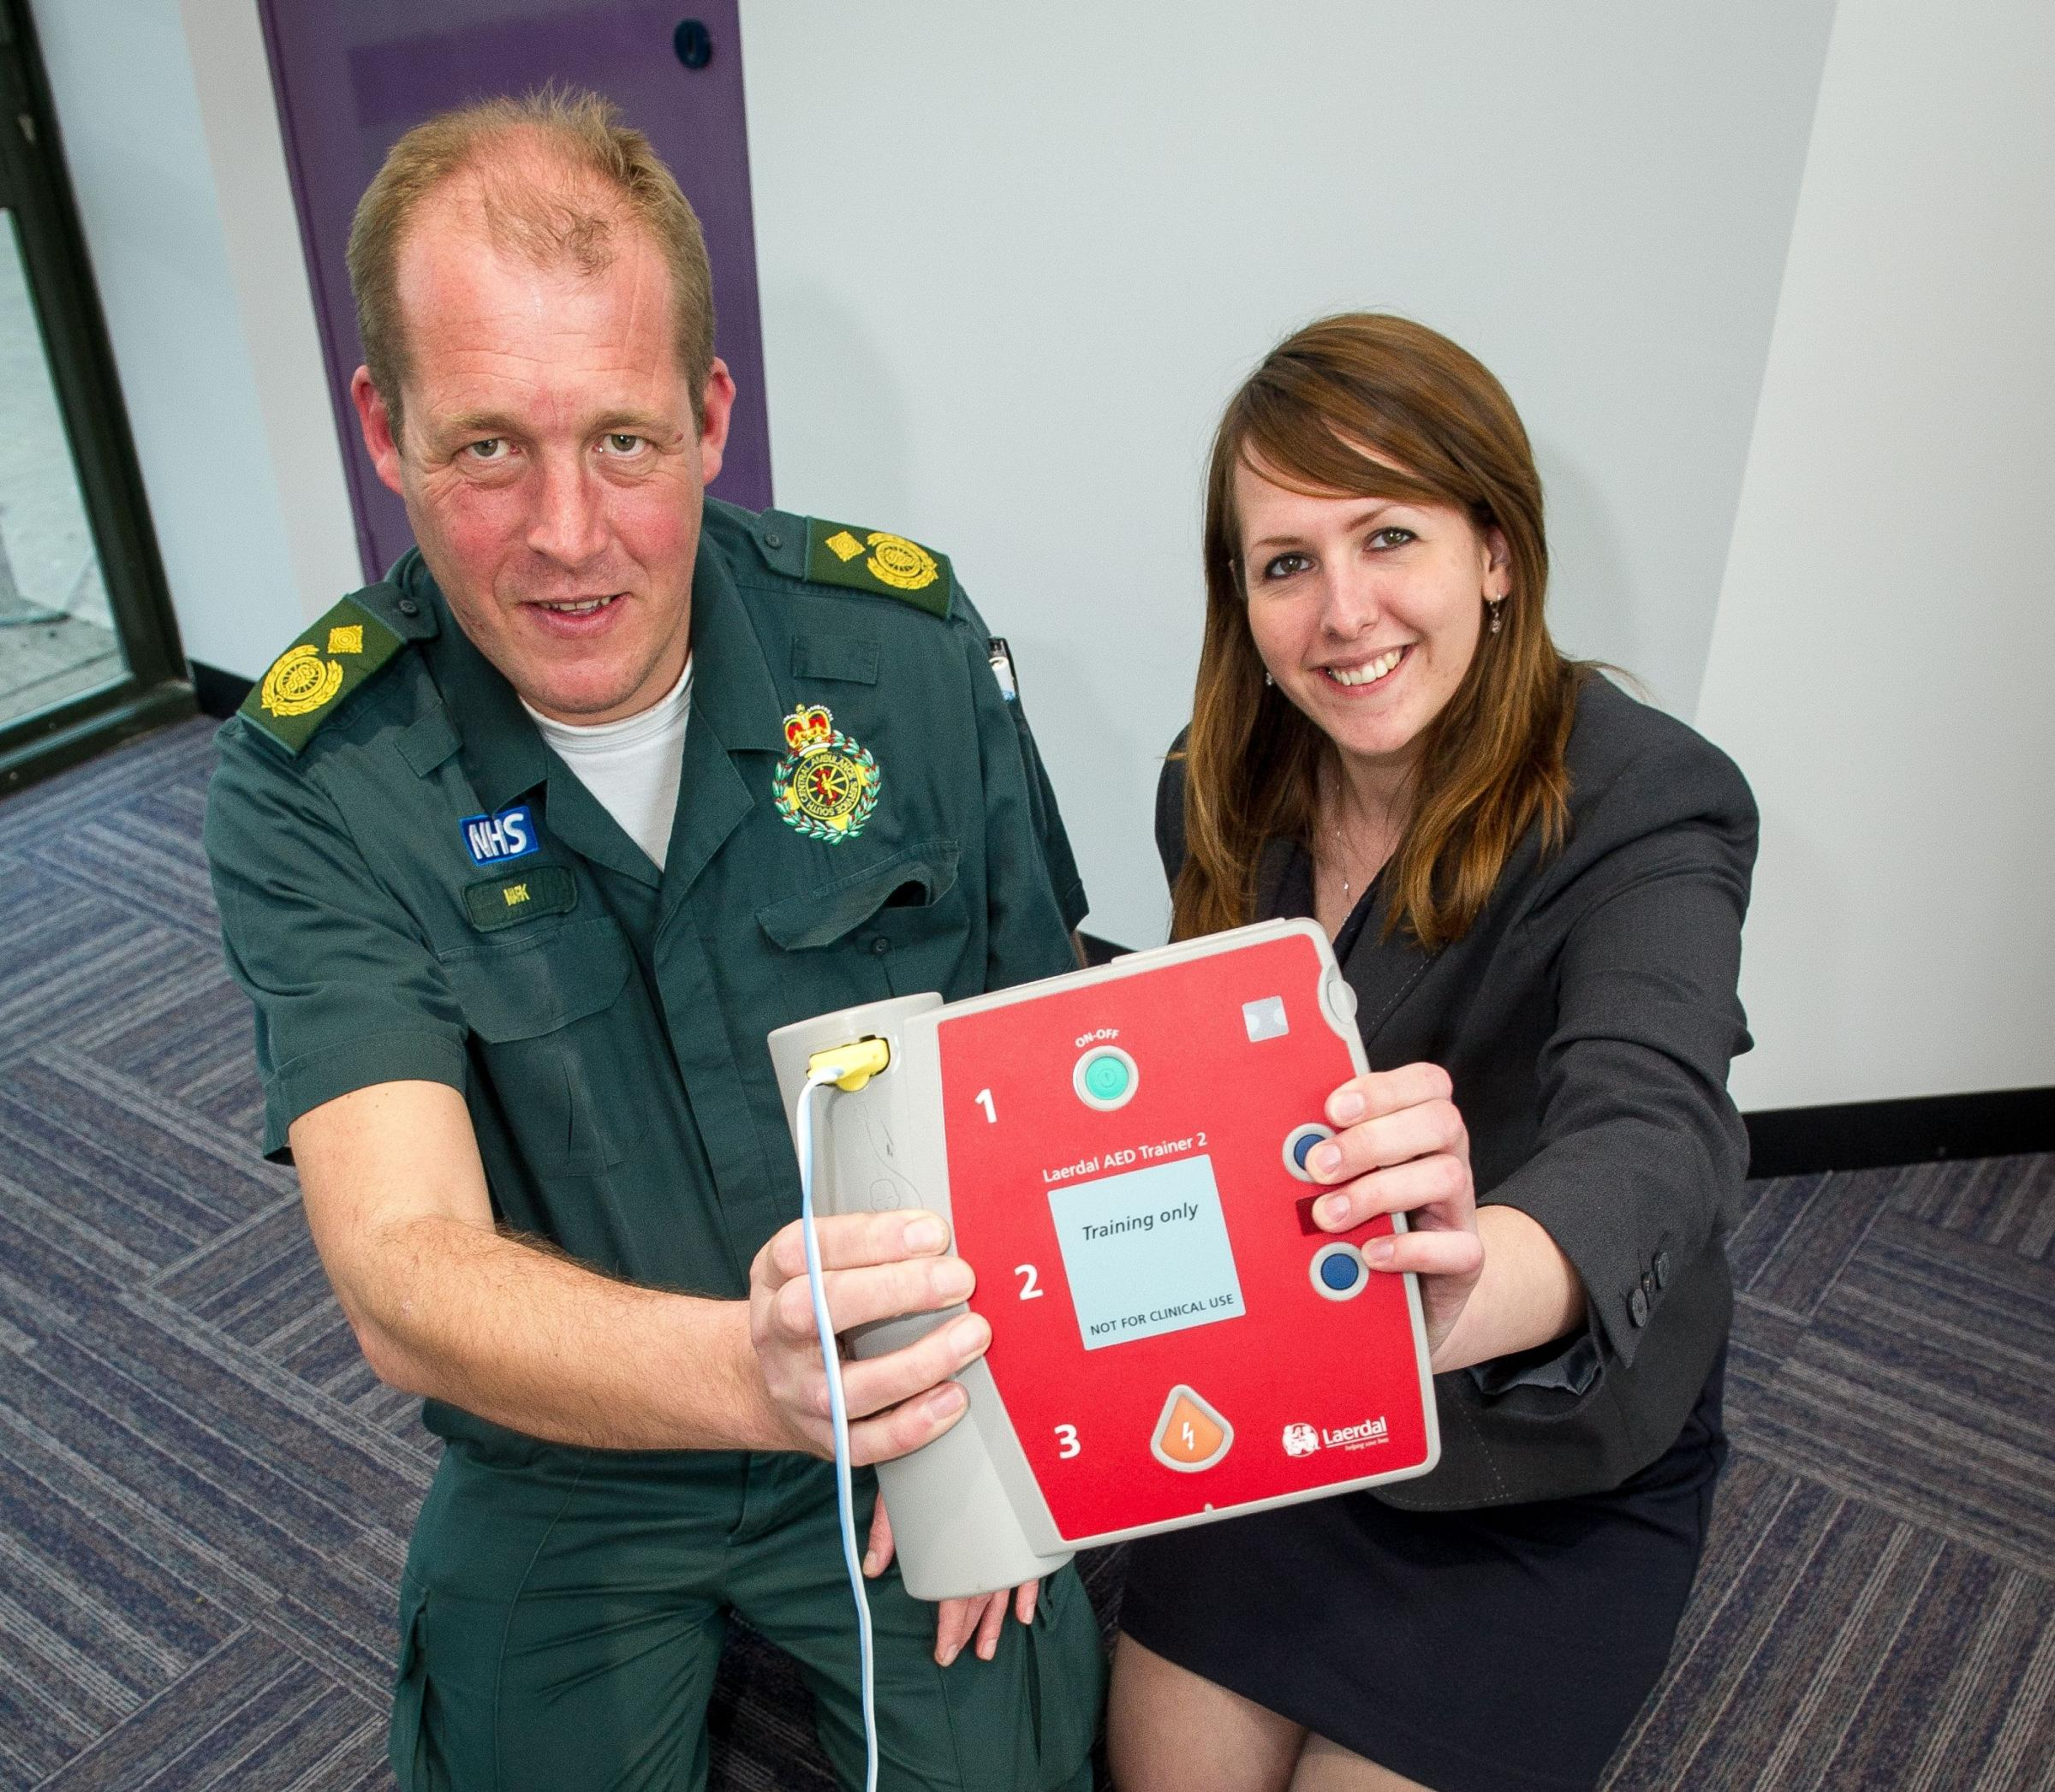 Mark Ainsworth-Smith shows Daily Echo reporter Rebecca Pearson how to use a defibrillator